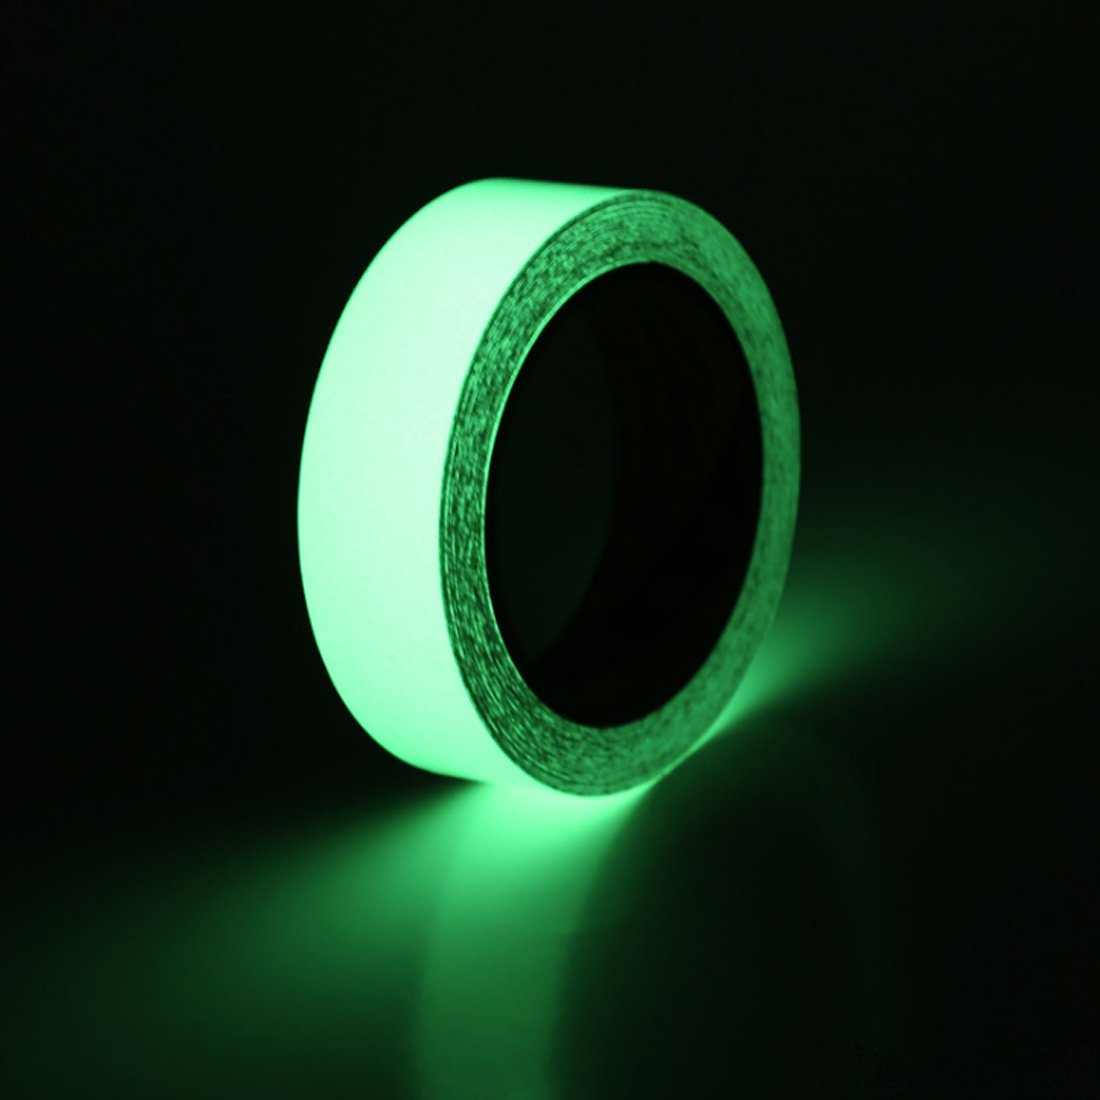 EONBON Glow in The Dark Luminous Tape Sticker 30 Feet x 1 inch, Removable Waterproof Photoluminescent Glow in The Dark Safety Tape, Perfect for Home, Office, Luminous Party - Non-Toxic, Eco-Friendly